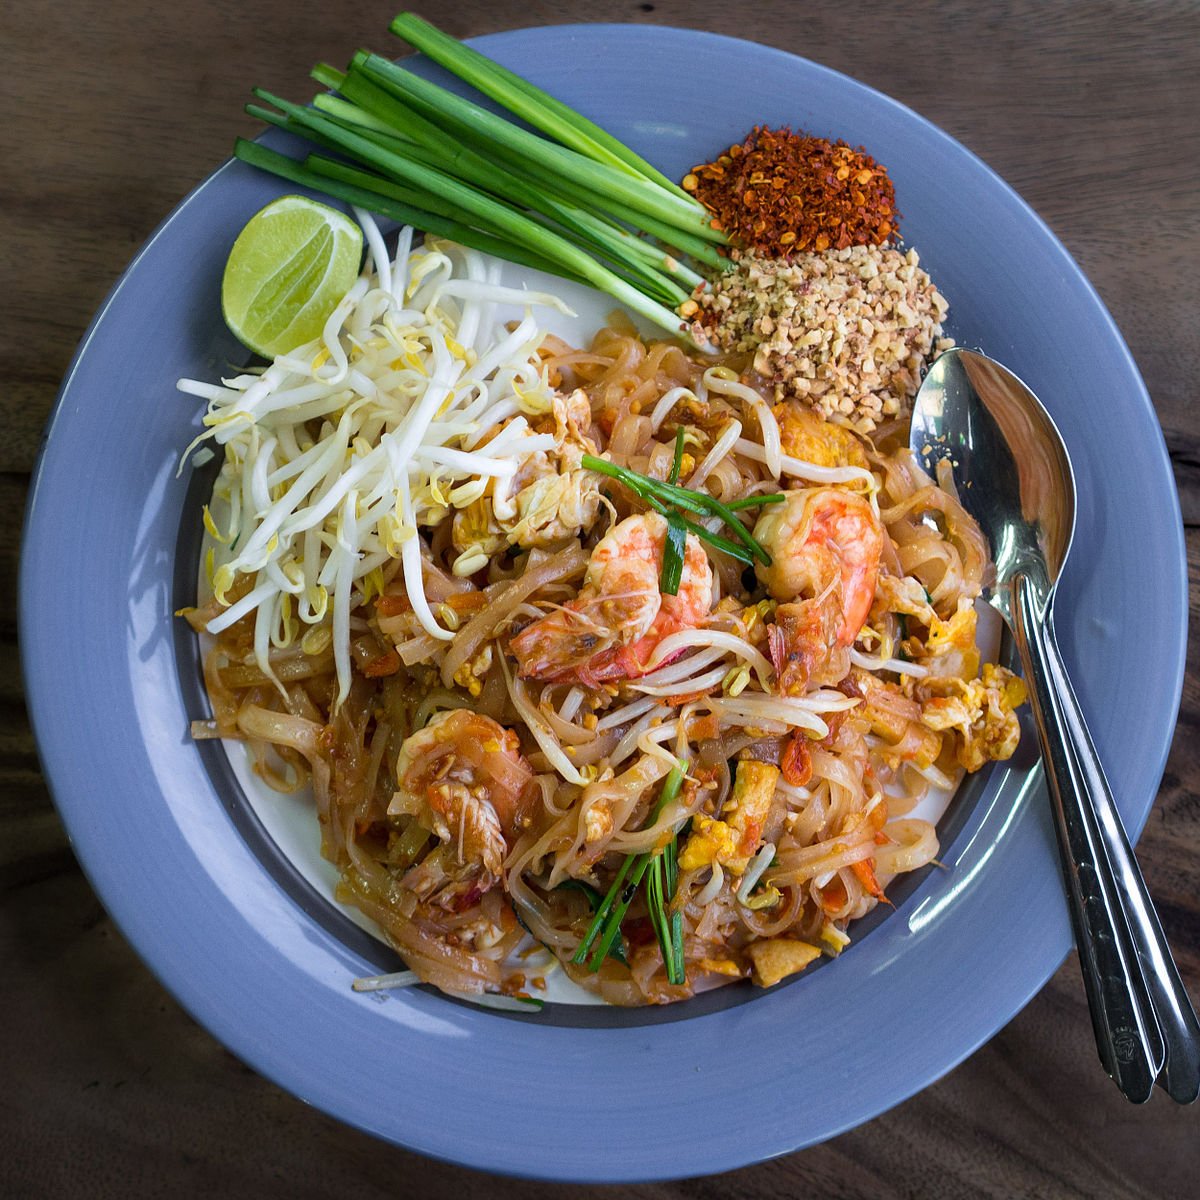 Pad thai wikipedia for Comida tipica tailandesa